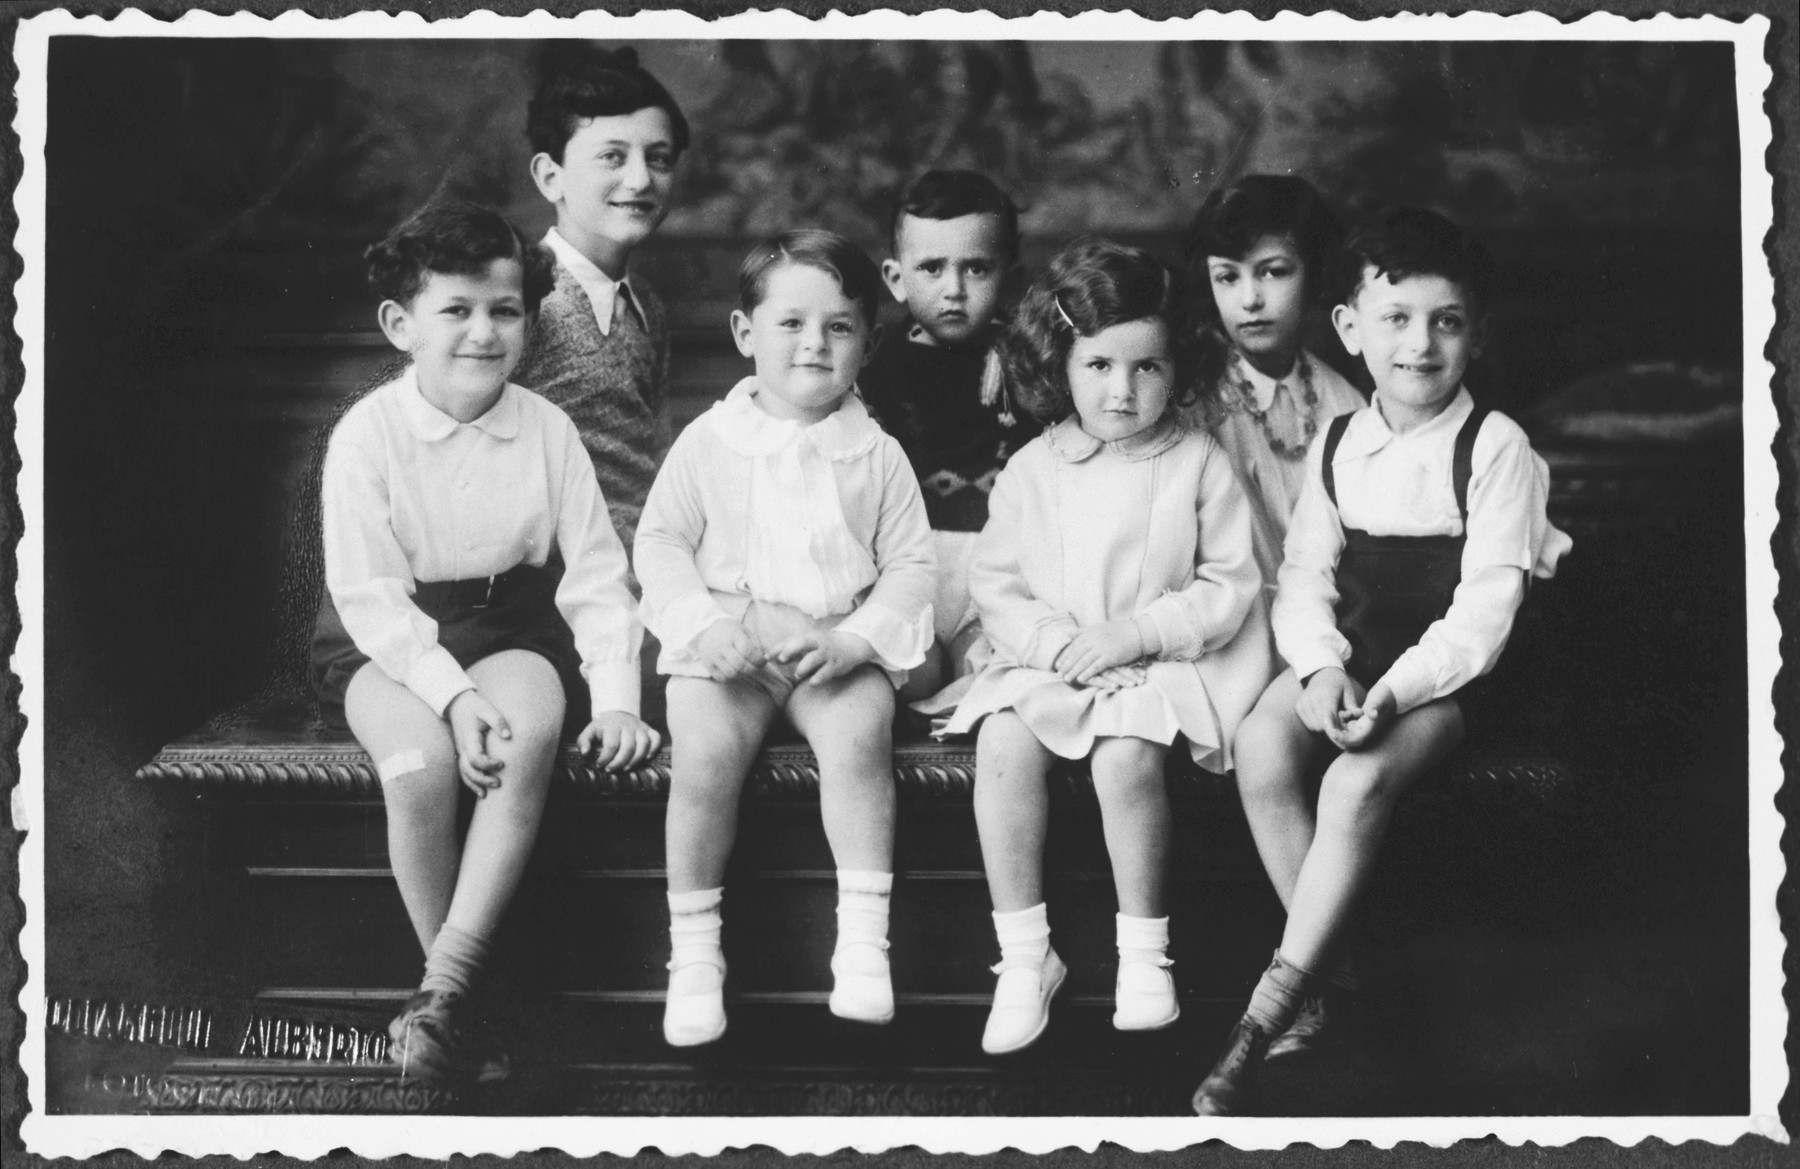 Studio portrait of seven Jewish cousins taken during the Passover holiday.   Pictured are the first cousins of Sergio Minerbi:  lower row from left: Gian Paolo (son of Ivo), Sergio (son of Arturo), Silvana (daughter of Ivo), and Giorgio-Lot (son of Leo); second row behind from left: Ruggero (son of Leo died in Kibbutz Ruhama); Enrico (son of Ivo, died at 3) and Luisa (daughter of Leo).